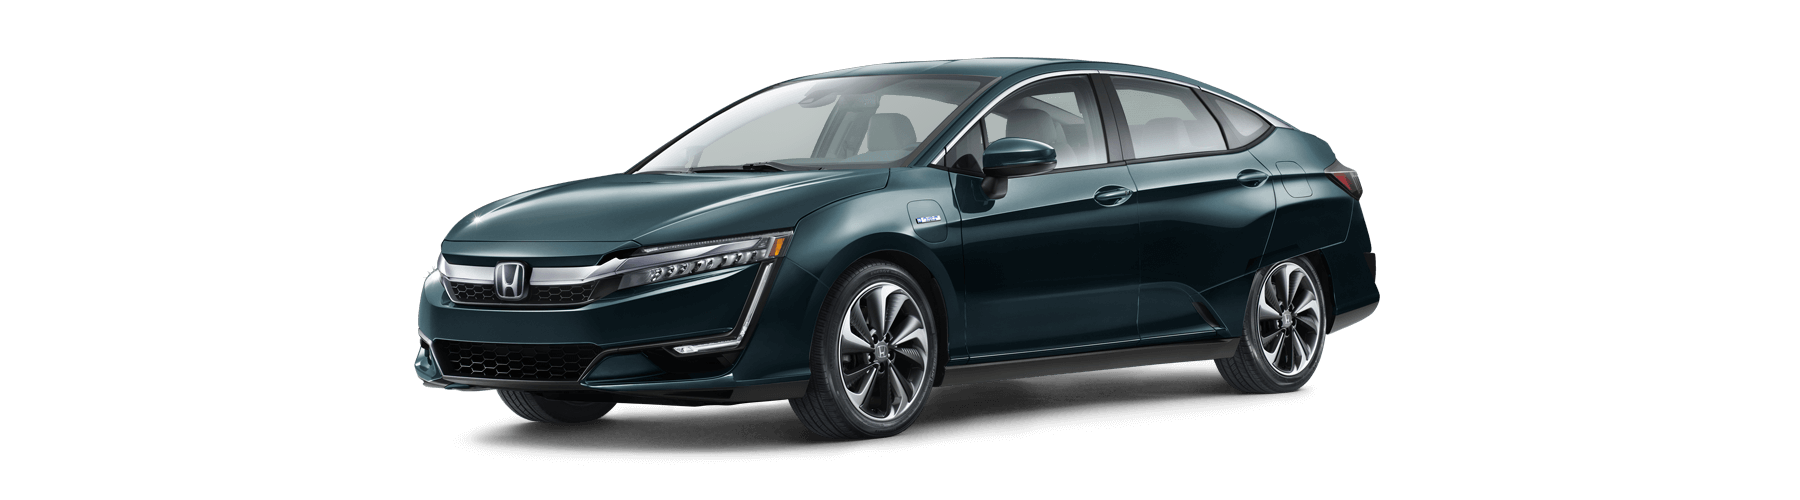 2018 Honda Clarity Plug-In Hybrid Front Angle